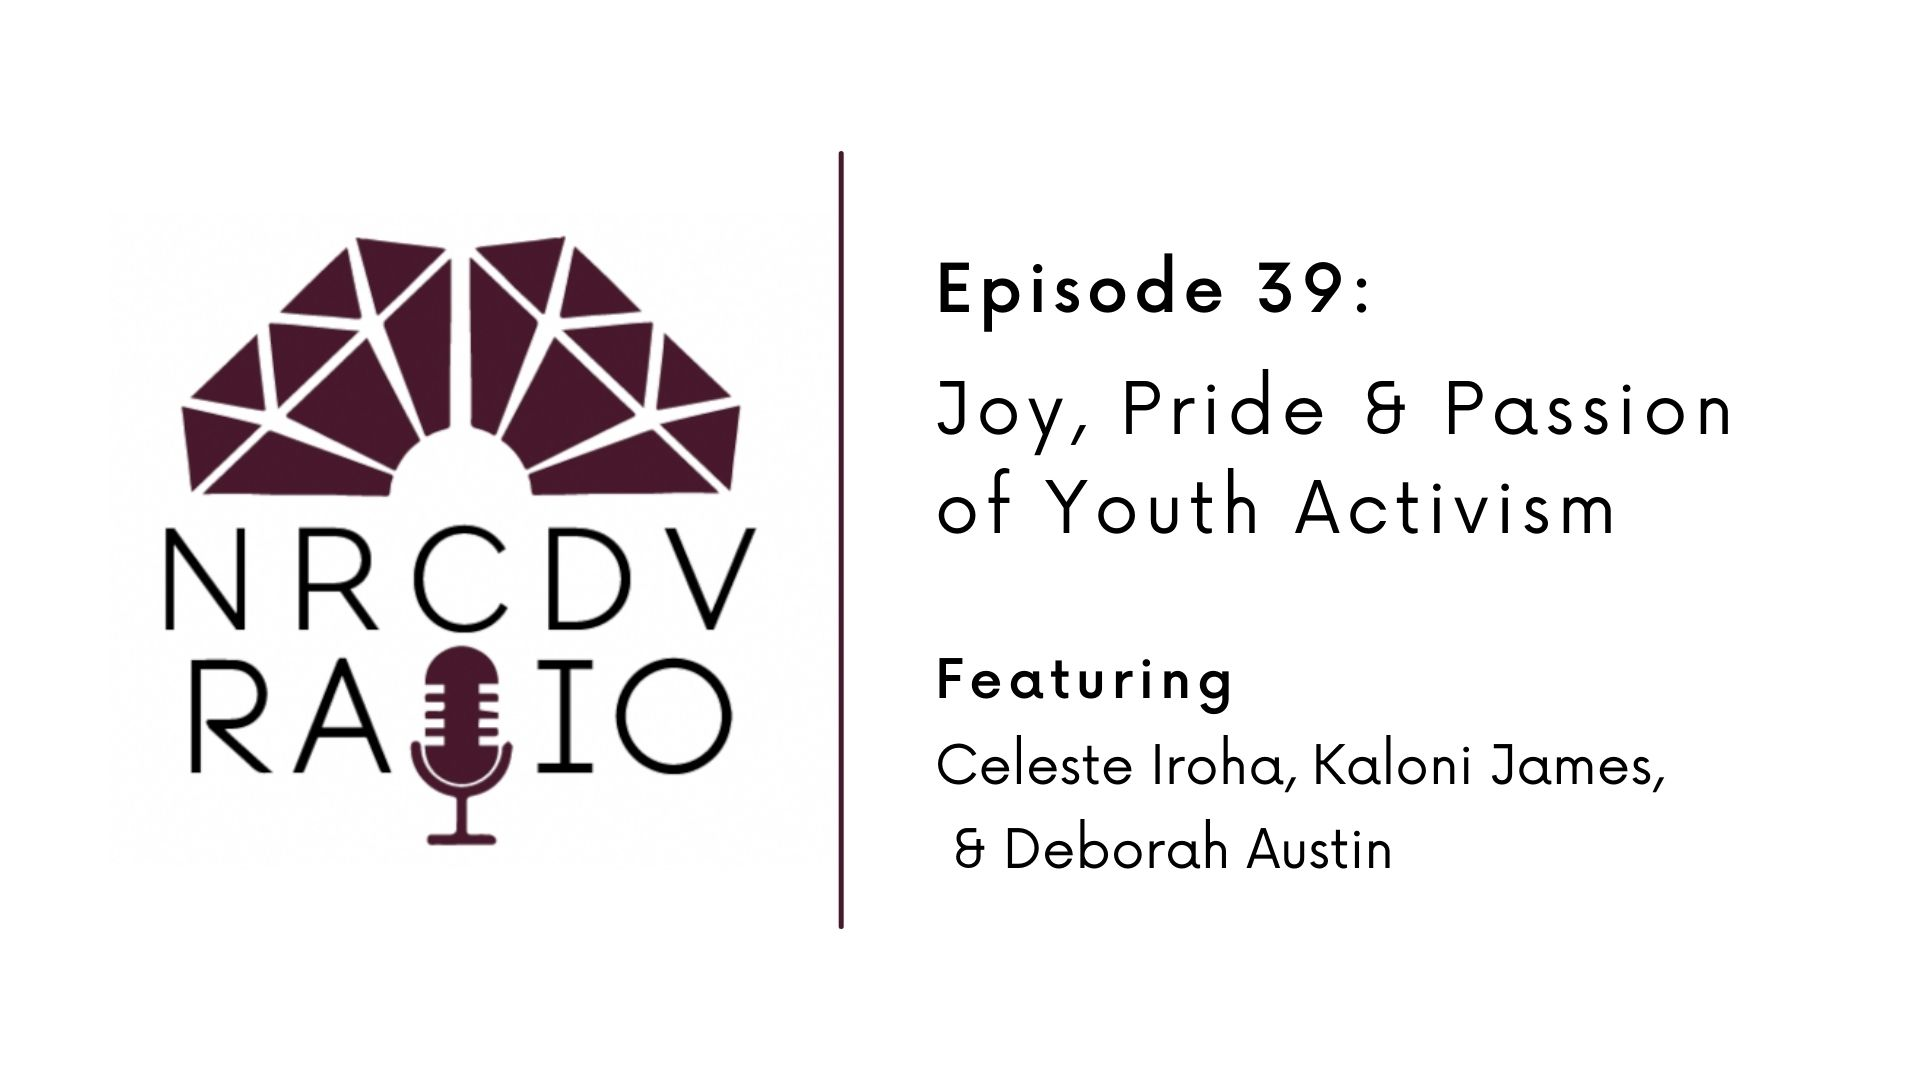 pisode 39: Stories of Transformation: Joy, Pride & Passion of Youth Activism